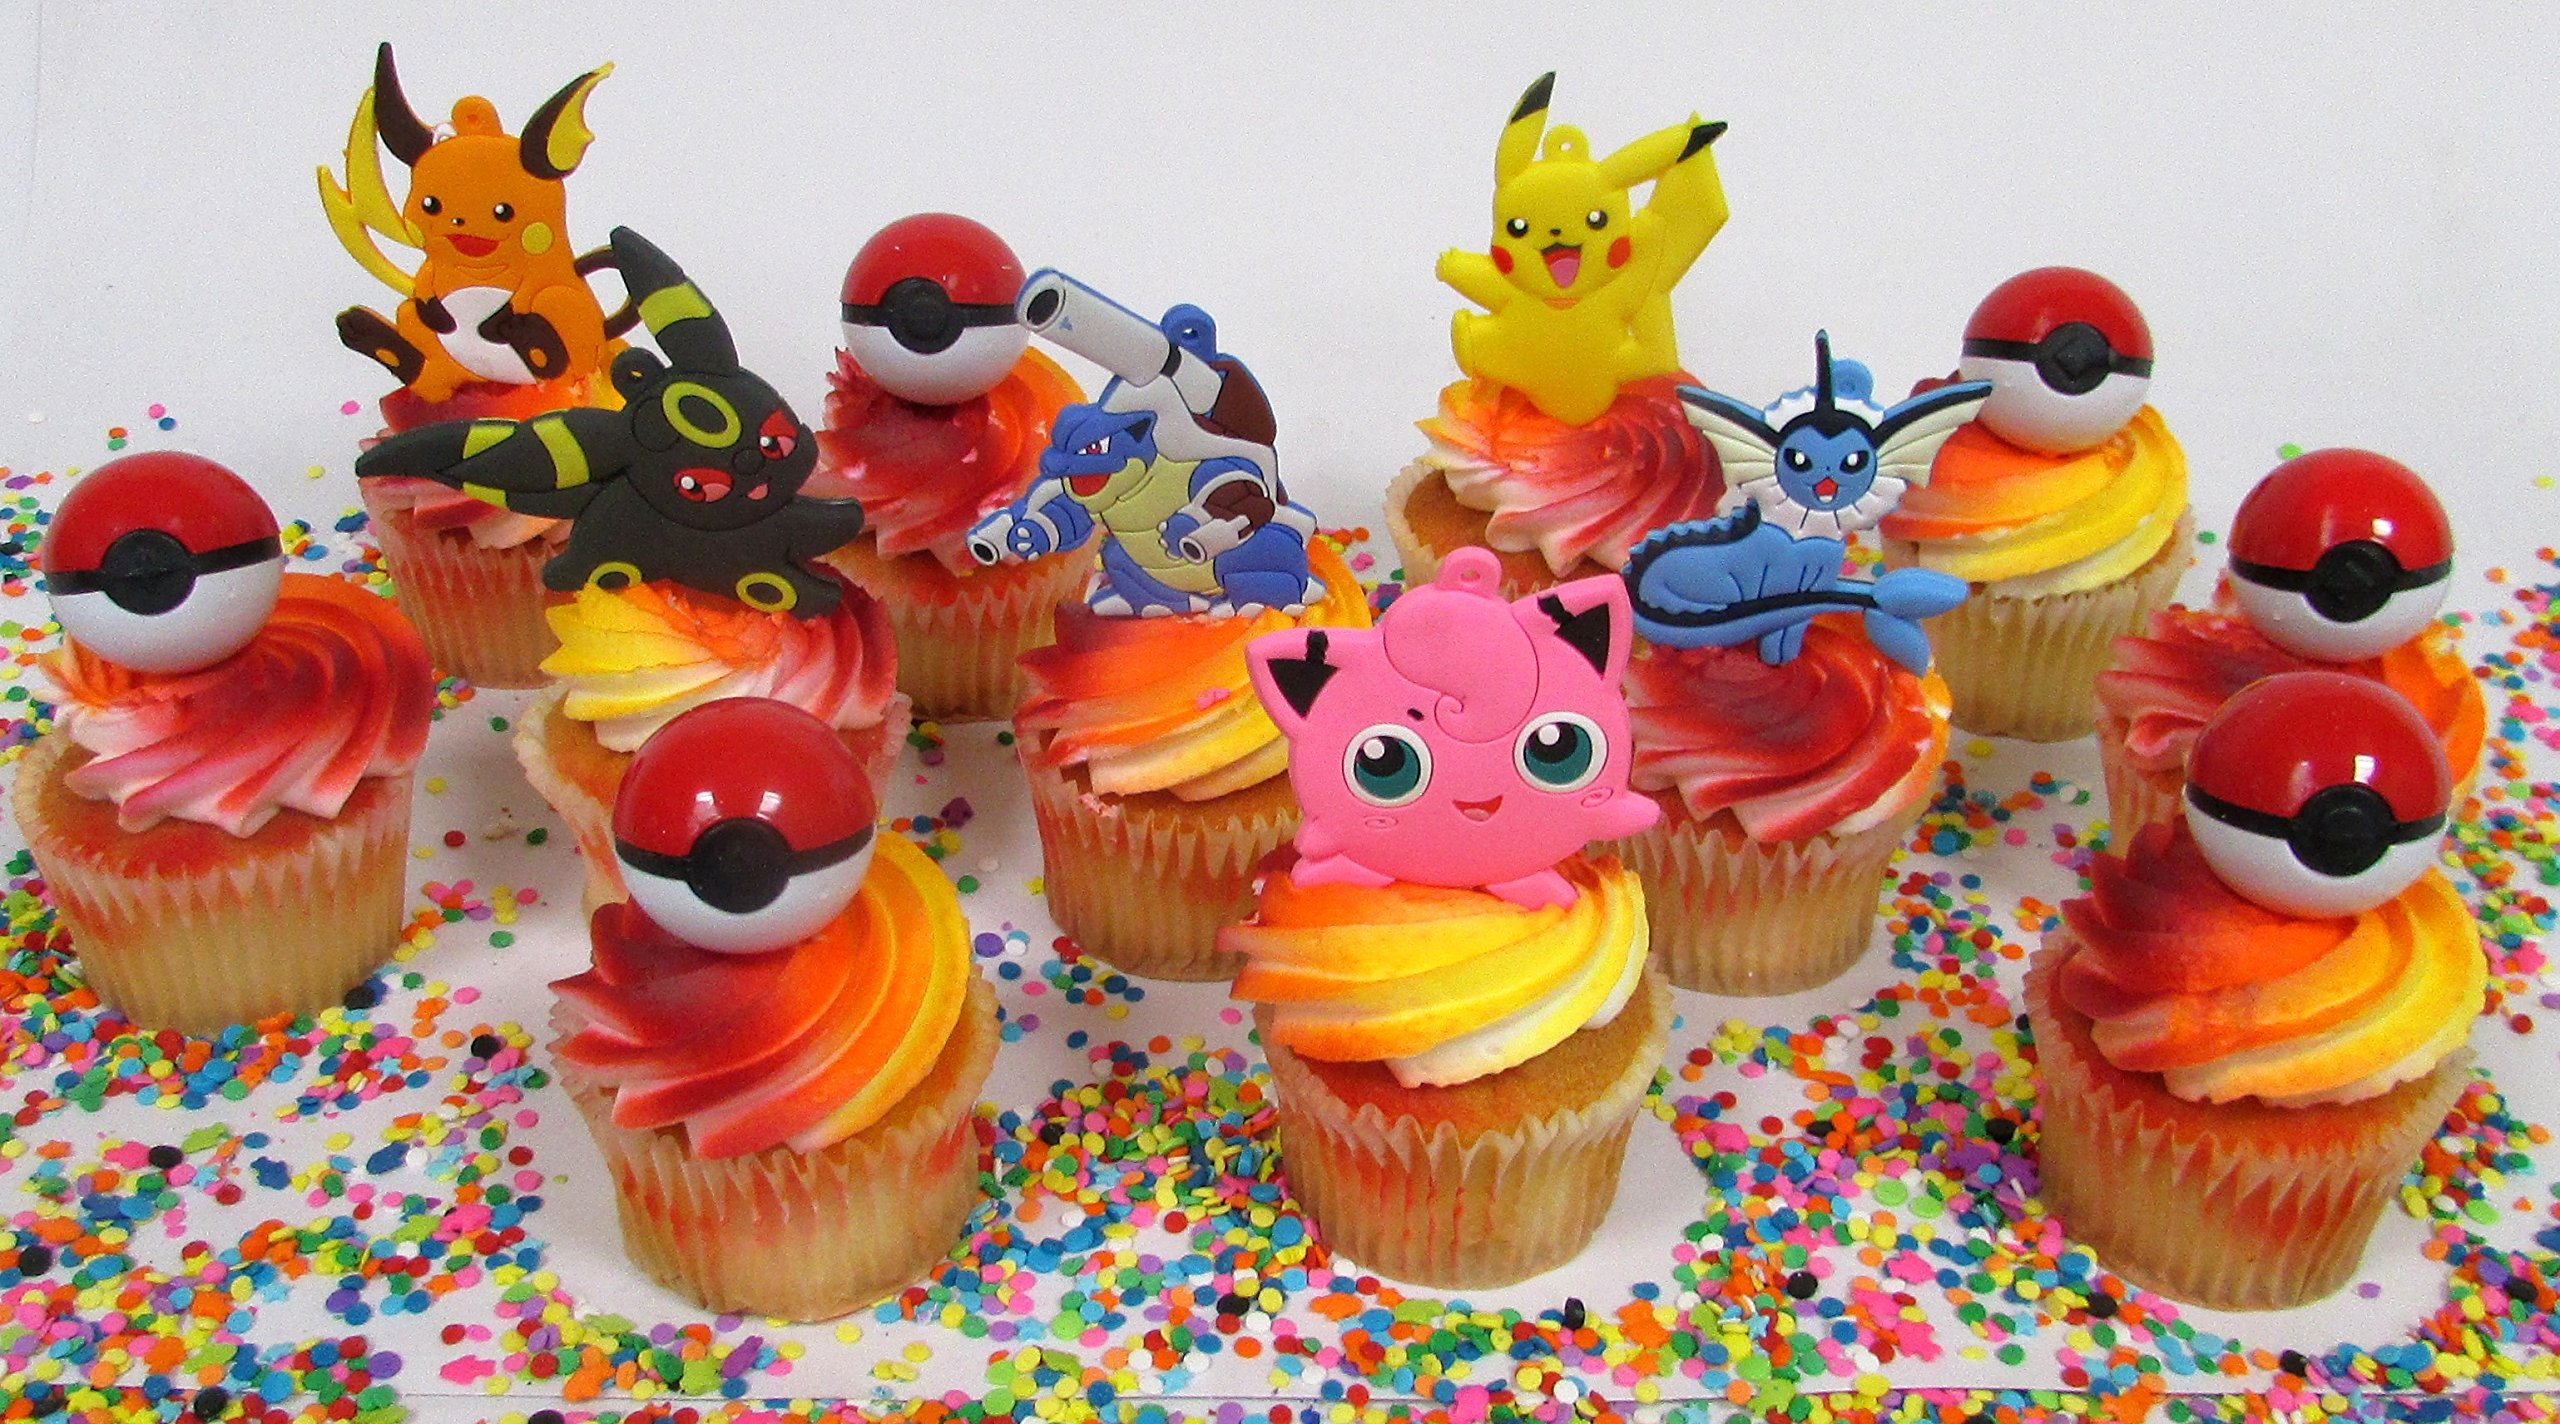 Pikachu and Friends Cupcake Topper Set with 6 Random Pocketmonster Characters and 6 Poke Balls by Cupcake Topper (Image #8)